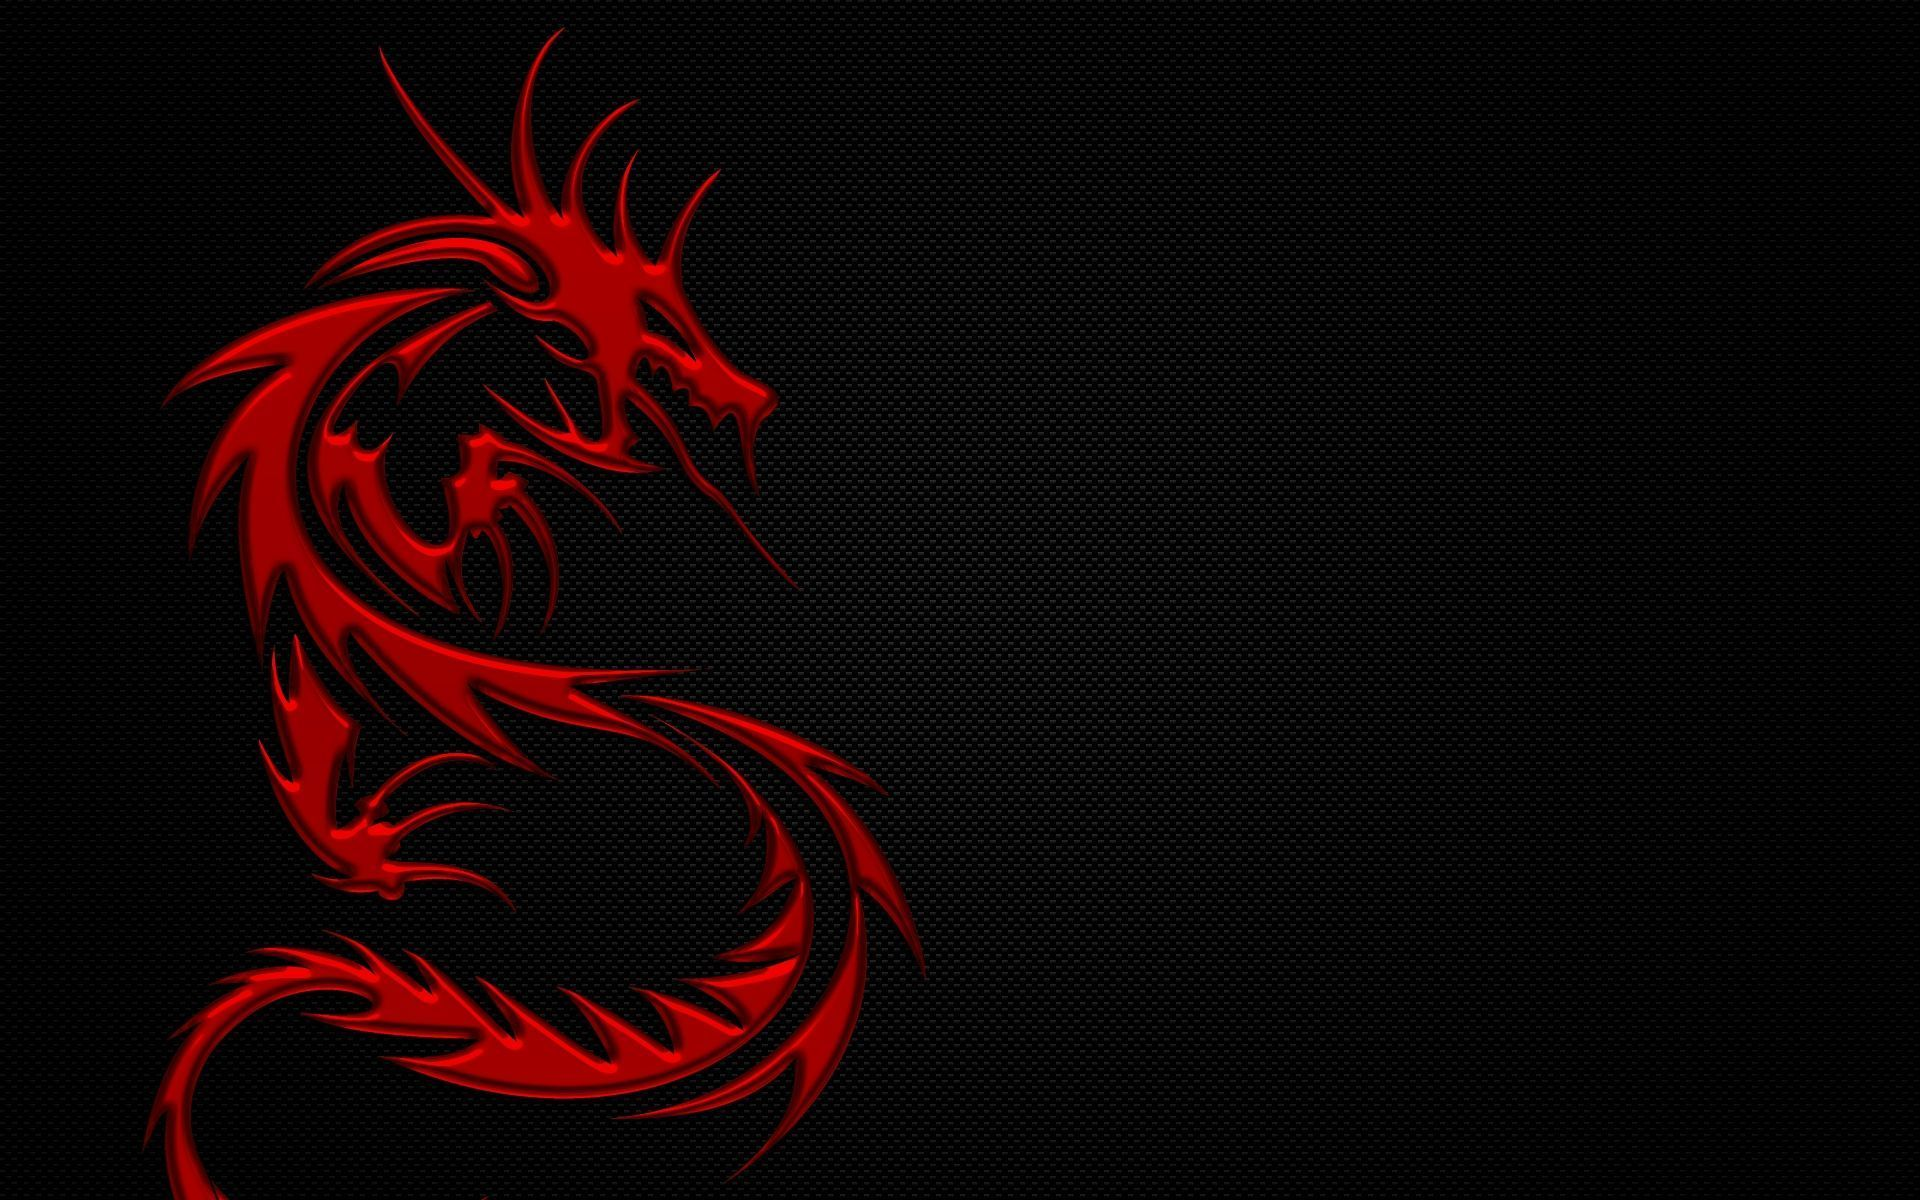 Red dragon Wallpaper 51245 Wallpaper Hd Pinterest Red